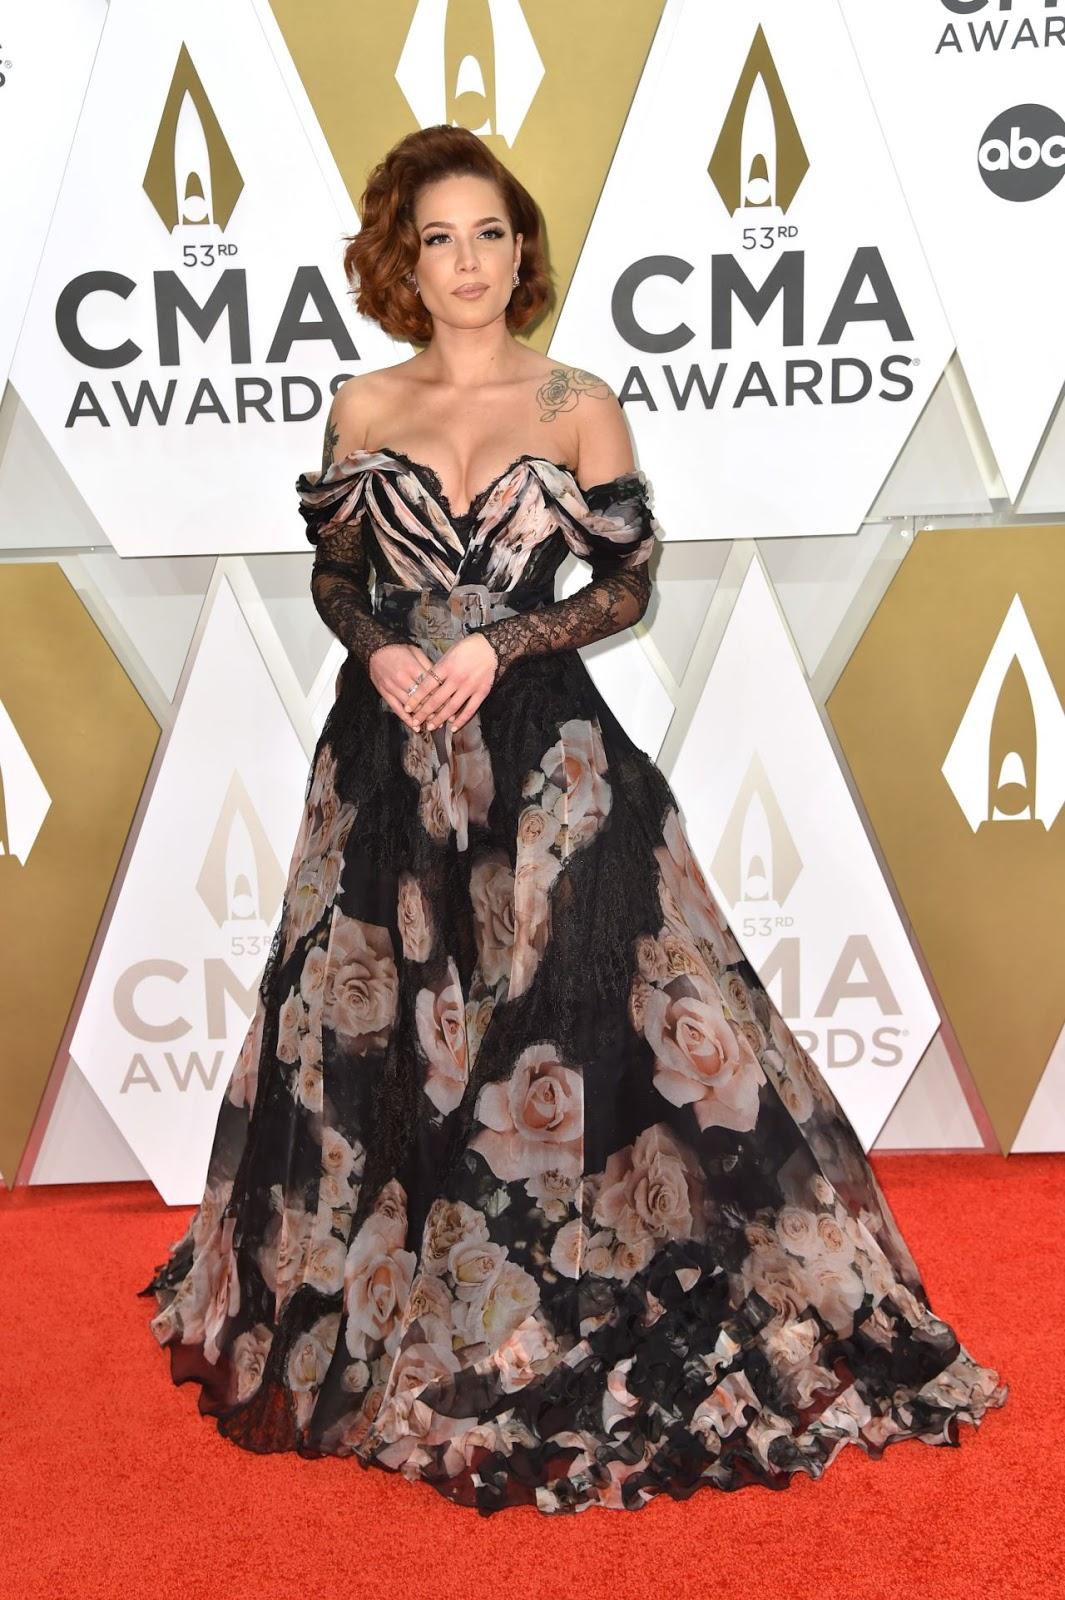 Halsey stuns in plunging black off-the-shoulder floral gown and ginger tresses at the CMA Awards in Nashville